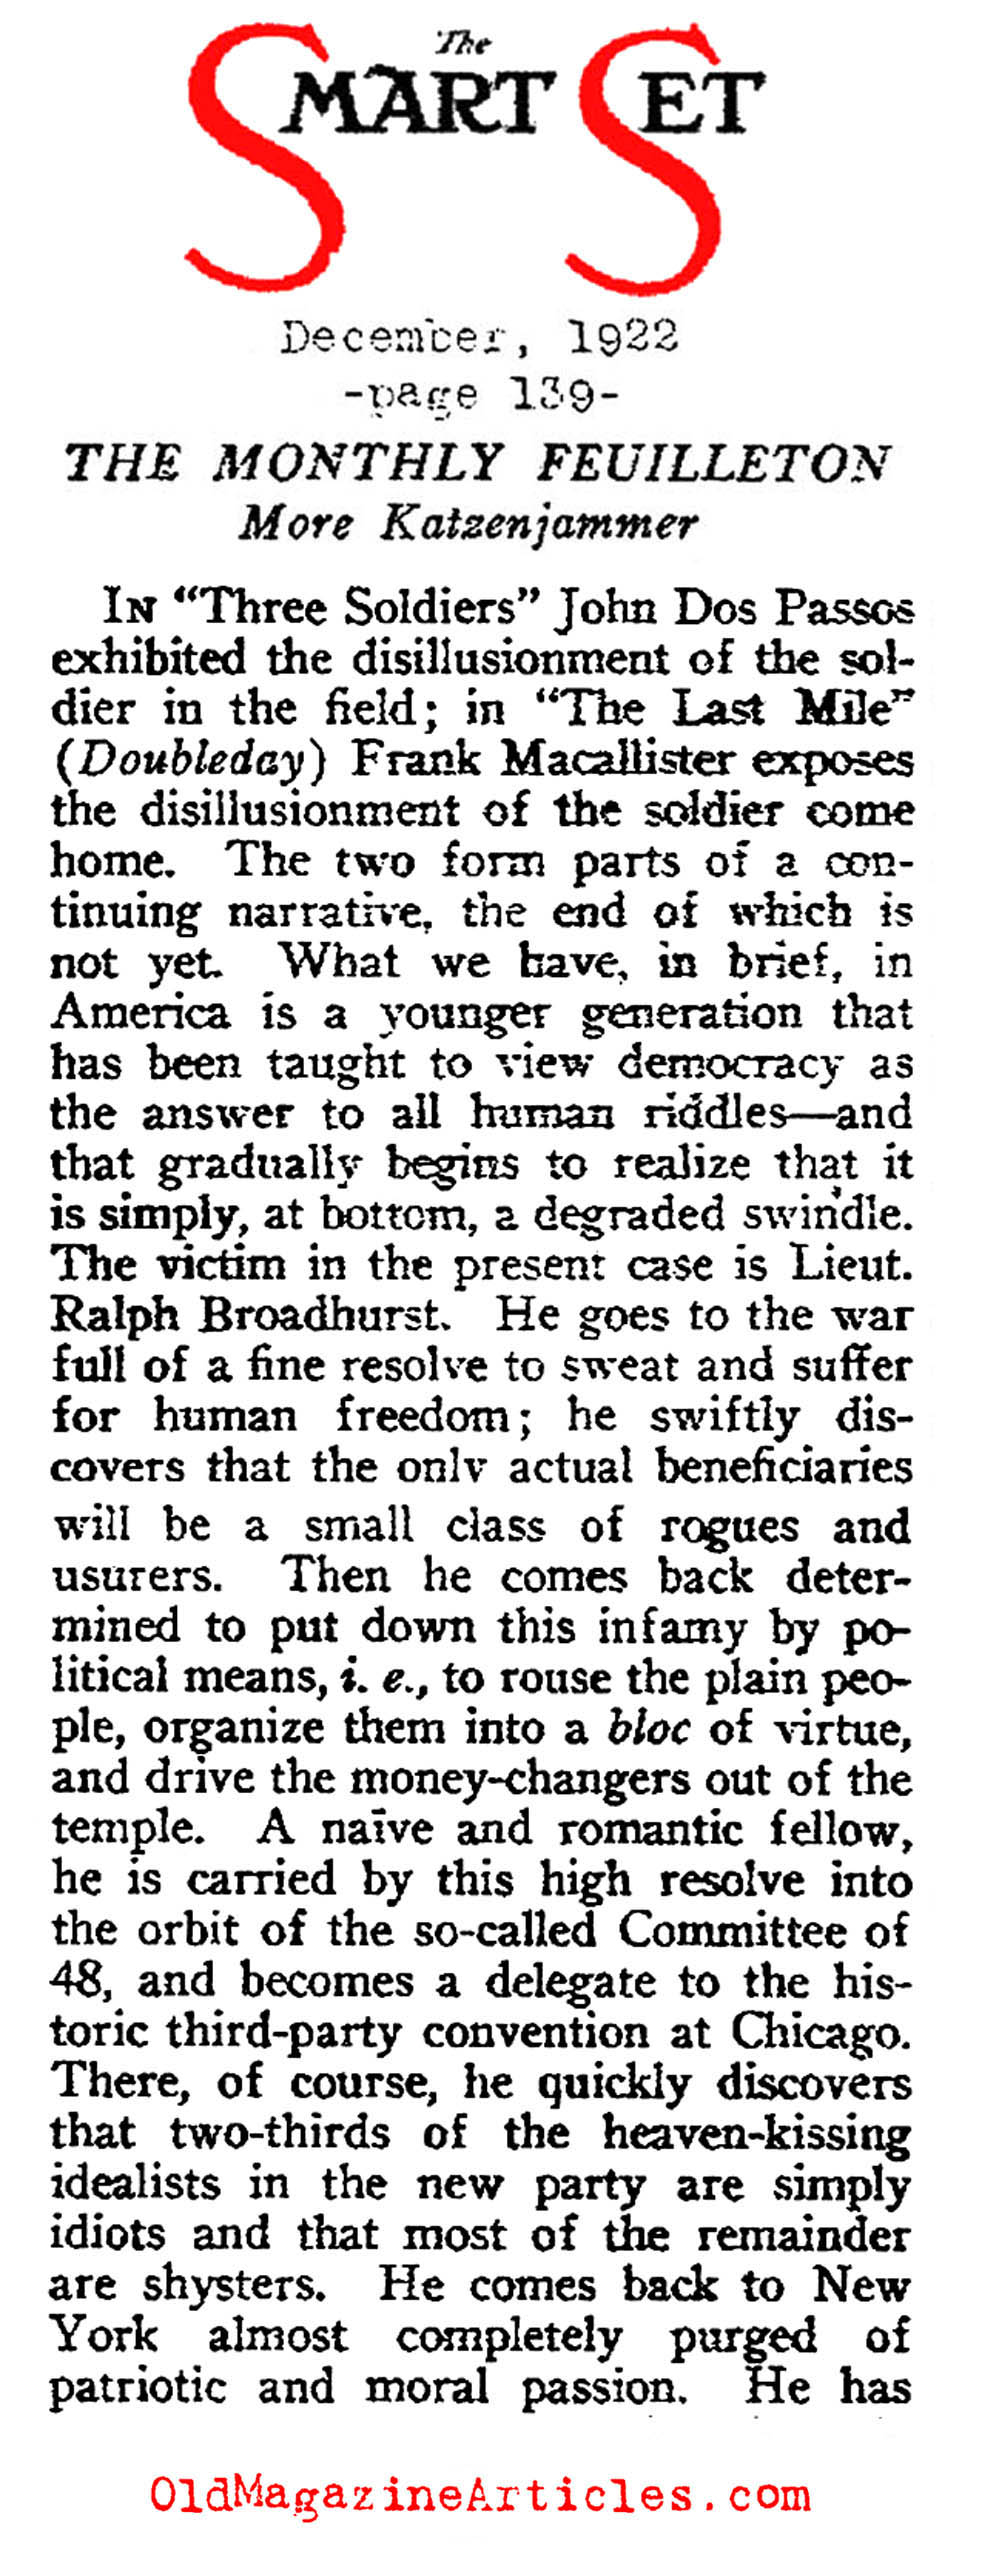 H.L. Mencken  Reviewed Two Novels Dealing the War and Disillusionment  (The Smart Set, 1922)